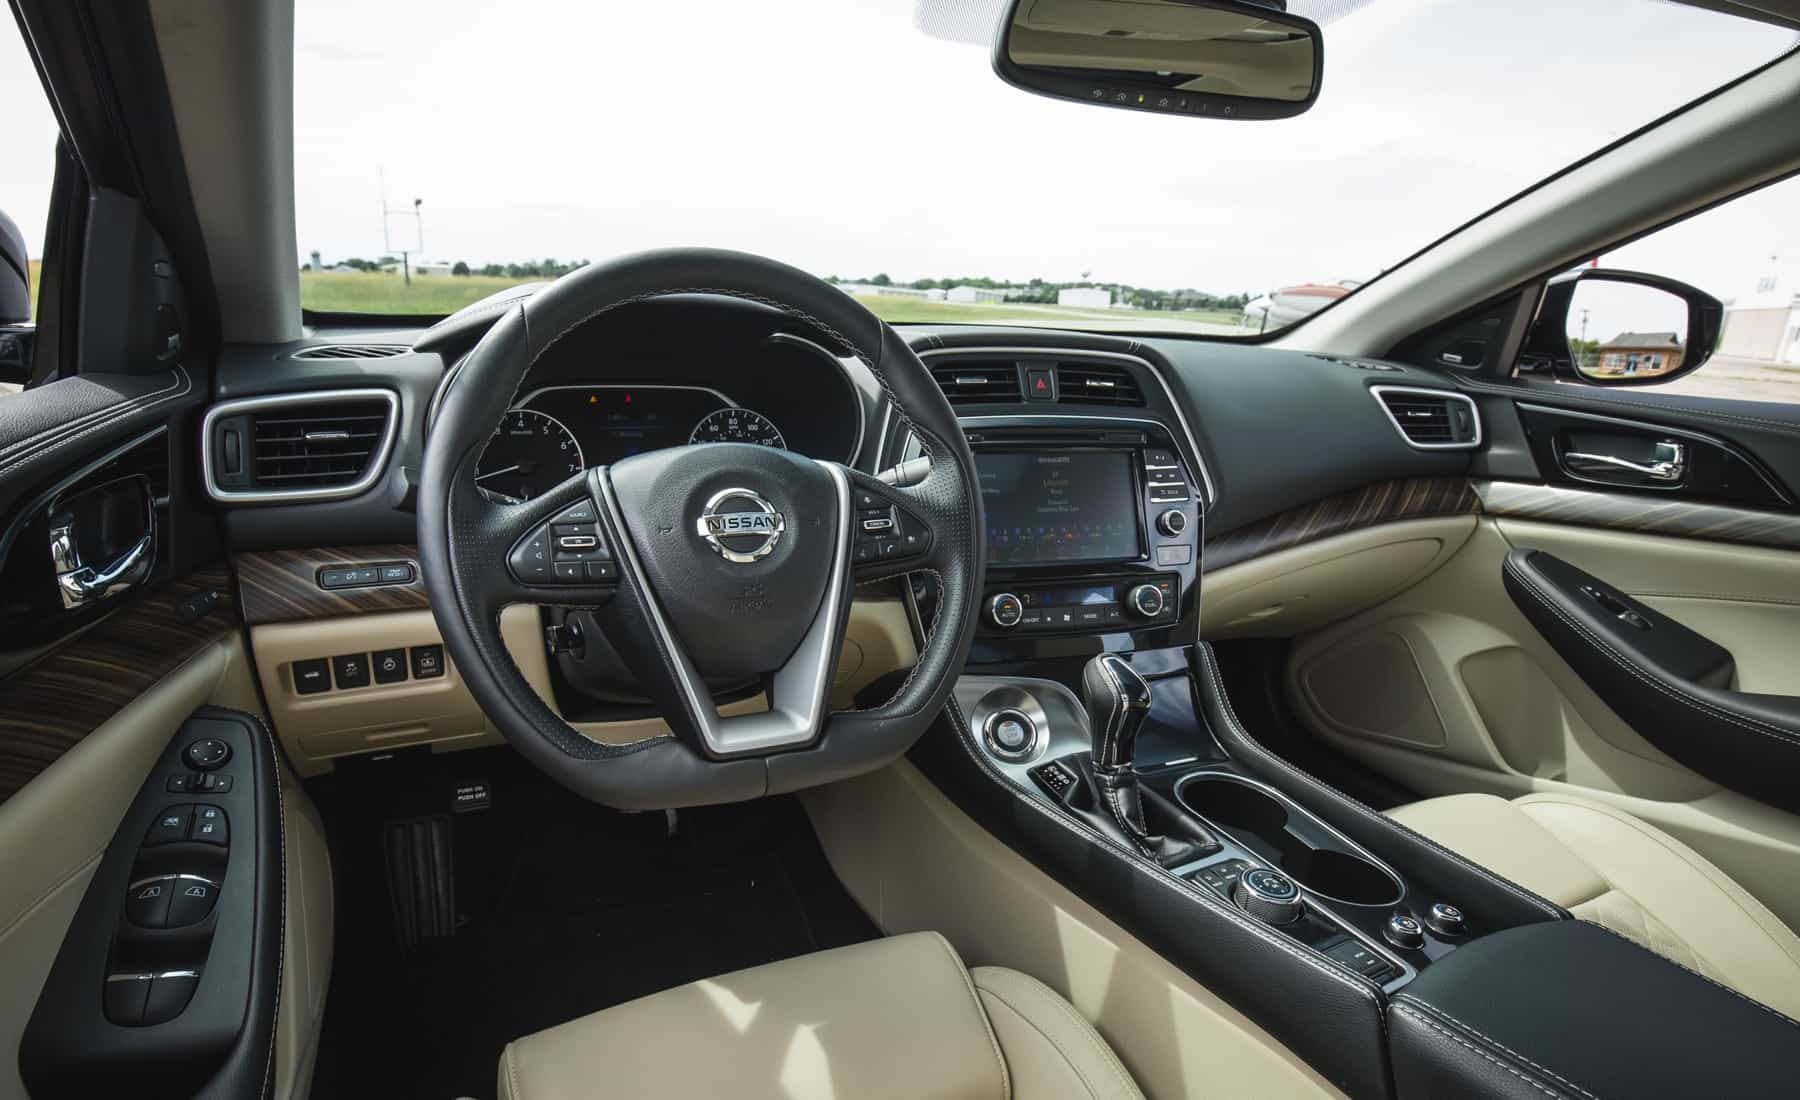 2017 Nissan Maxima Interior View Steering And Dashboard (Photo 30 of 40)